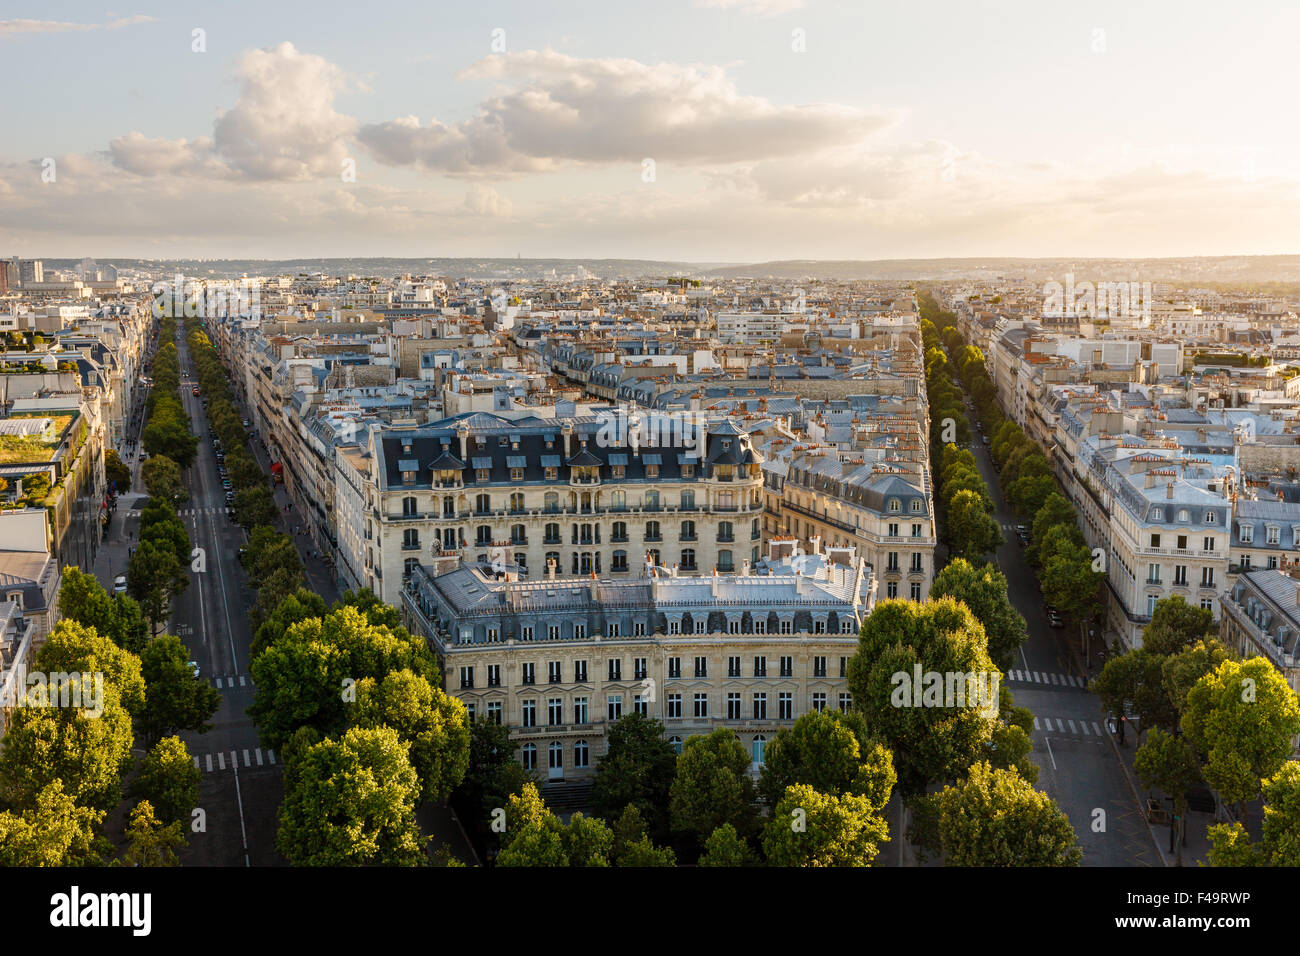 Aerial view of the 16th arrondissement in Paris, France. View of Haussmannian style buildings and rooftops late - Stock Image